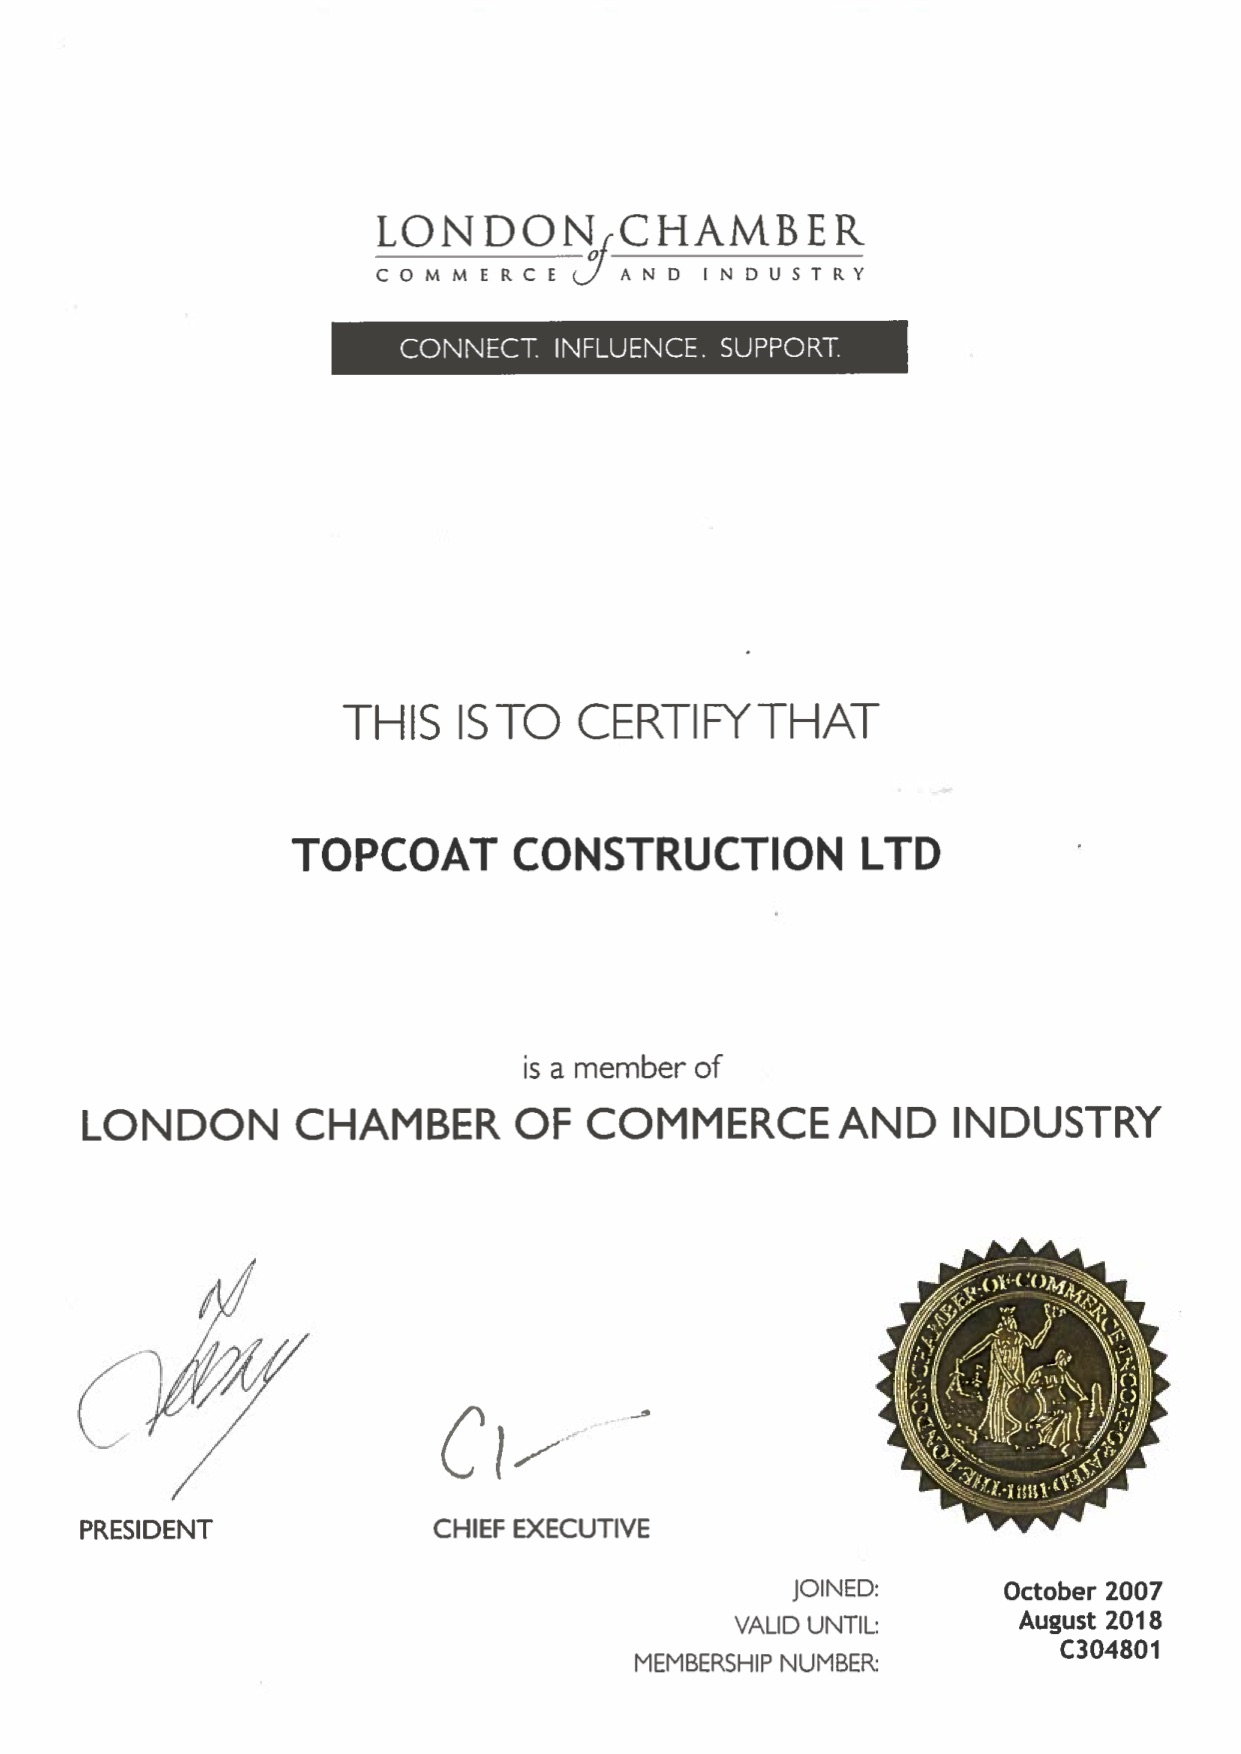 London Chamber of Commerce